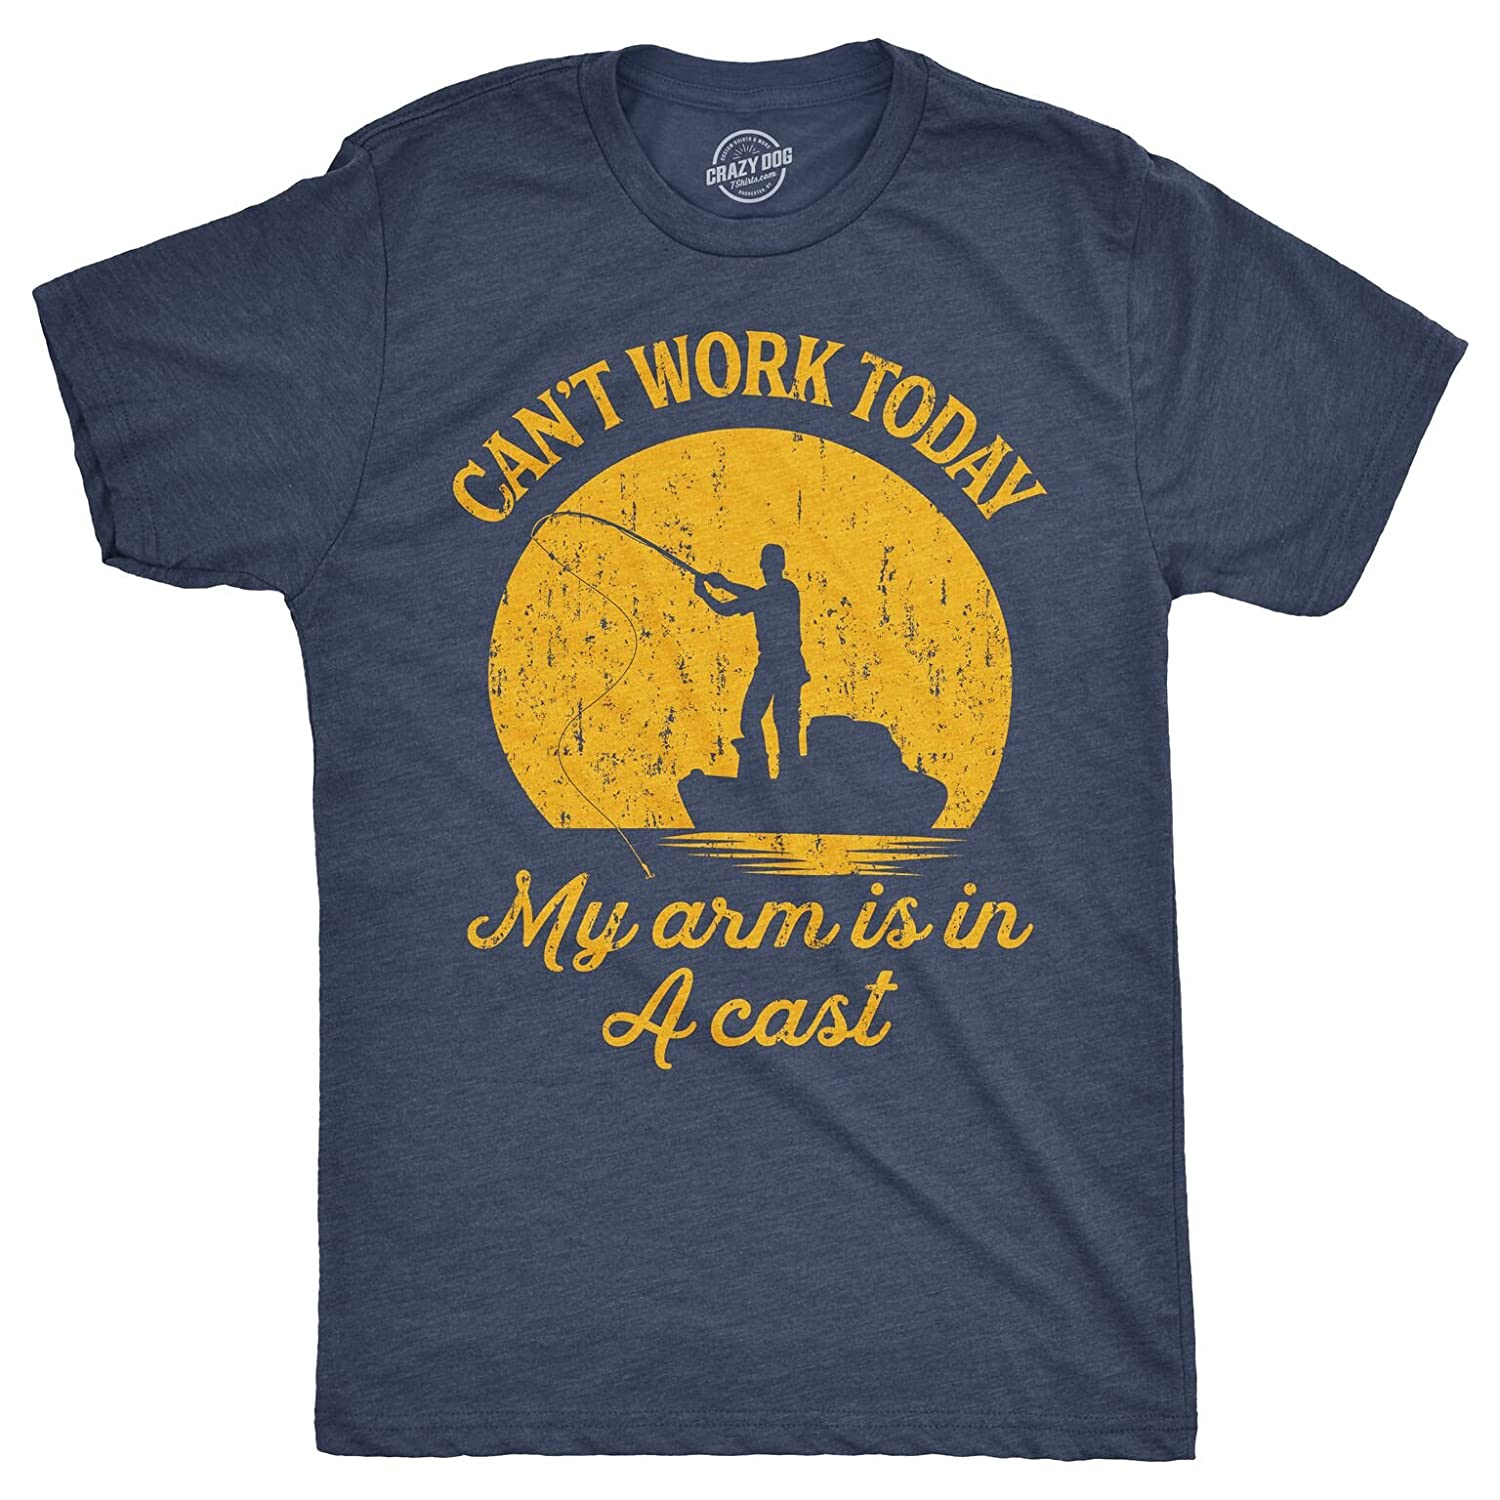 ebde8cf8 Amazon.com: Mens Can't Work Today My Arm is in A Cast T-Shirt Funny Fishing  Tee for Guys: Clothing